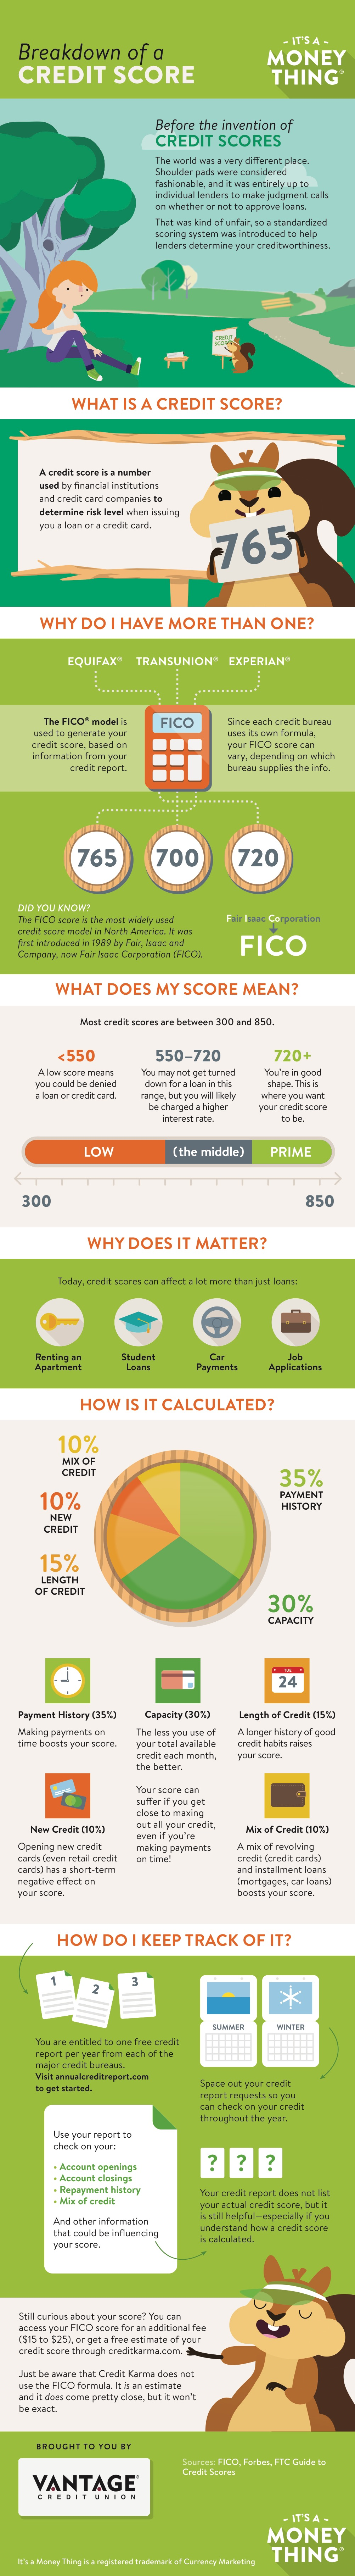 Infographic explaining the different factors behind a credit score.